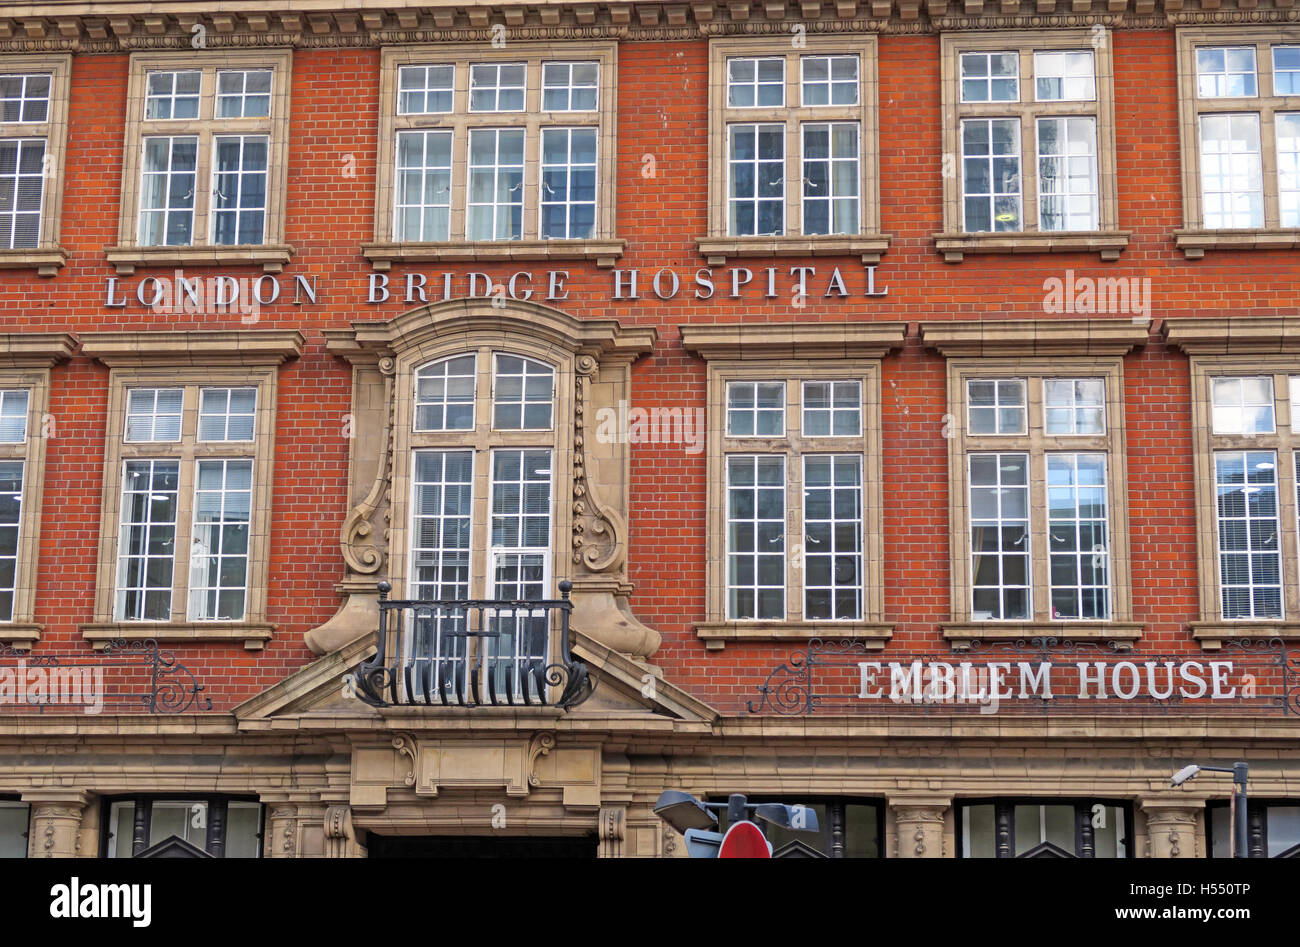 London Bridge Hospital, Emblem House, Southwark, 27 Tooley St, London SE1 2PR - Stock Image